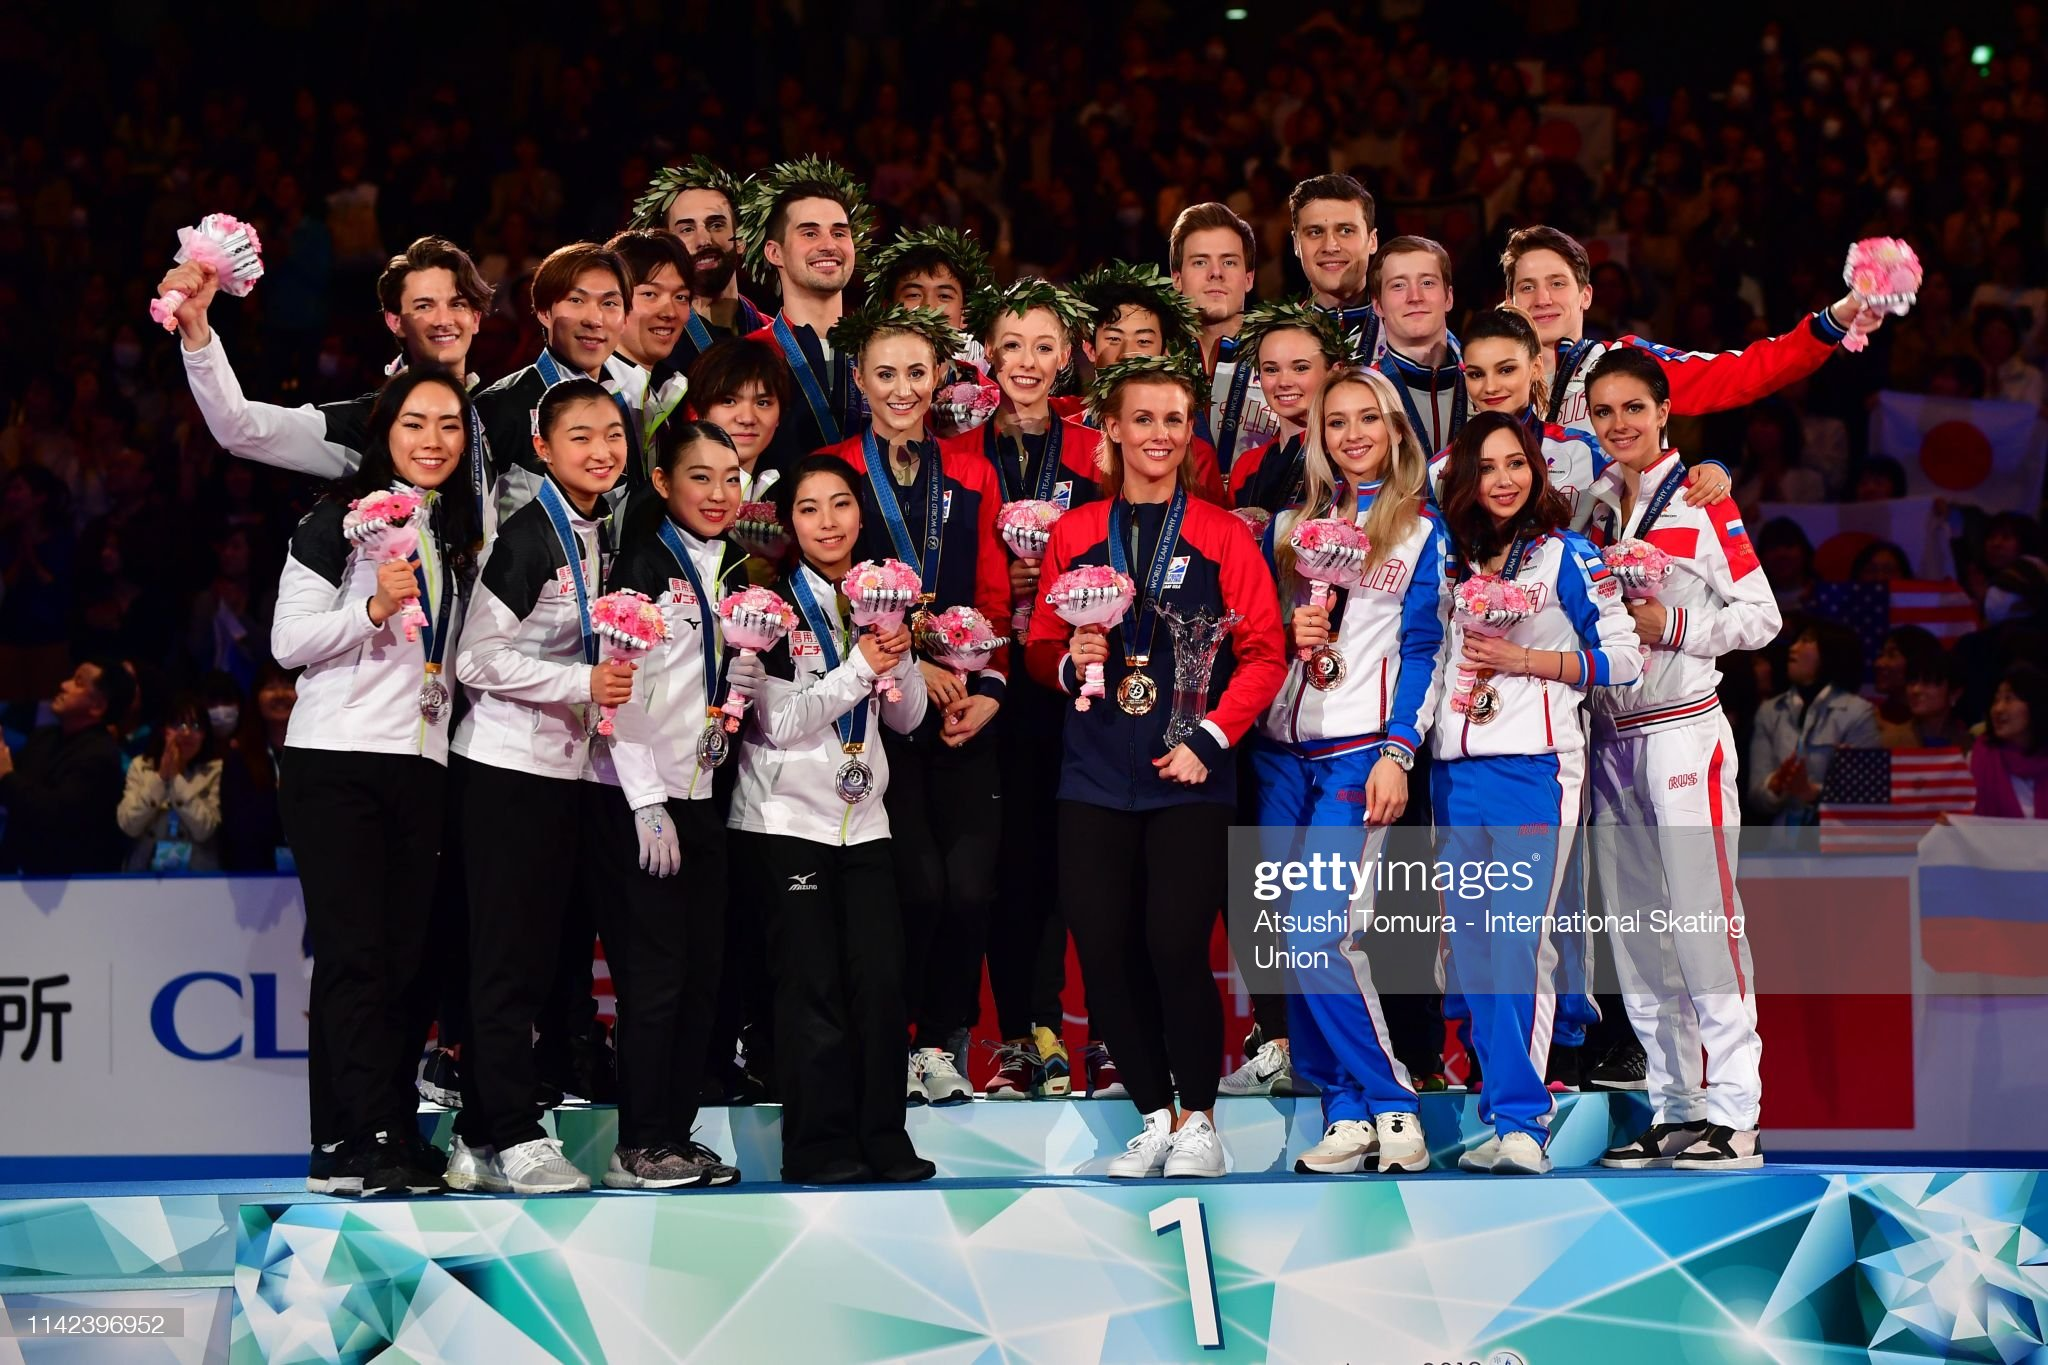 https://media.gettyimages.com/photos/silver-medalist-team-japan-gold-medalist-team-usa-and-bronze-medalist-picture-id1142396952?s=2048x2048